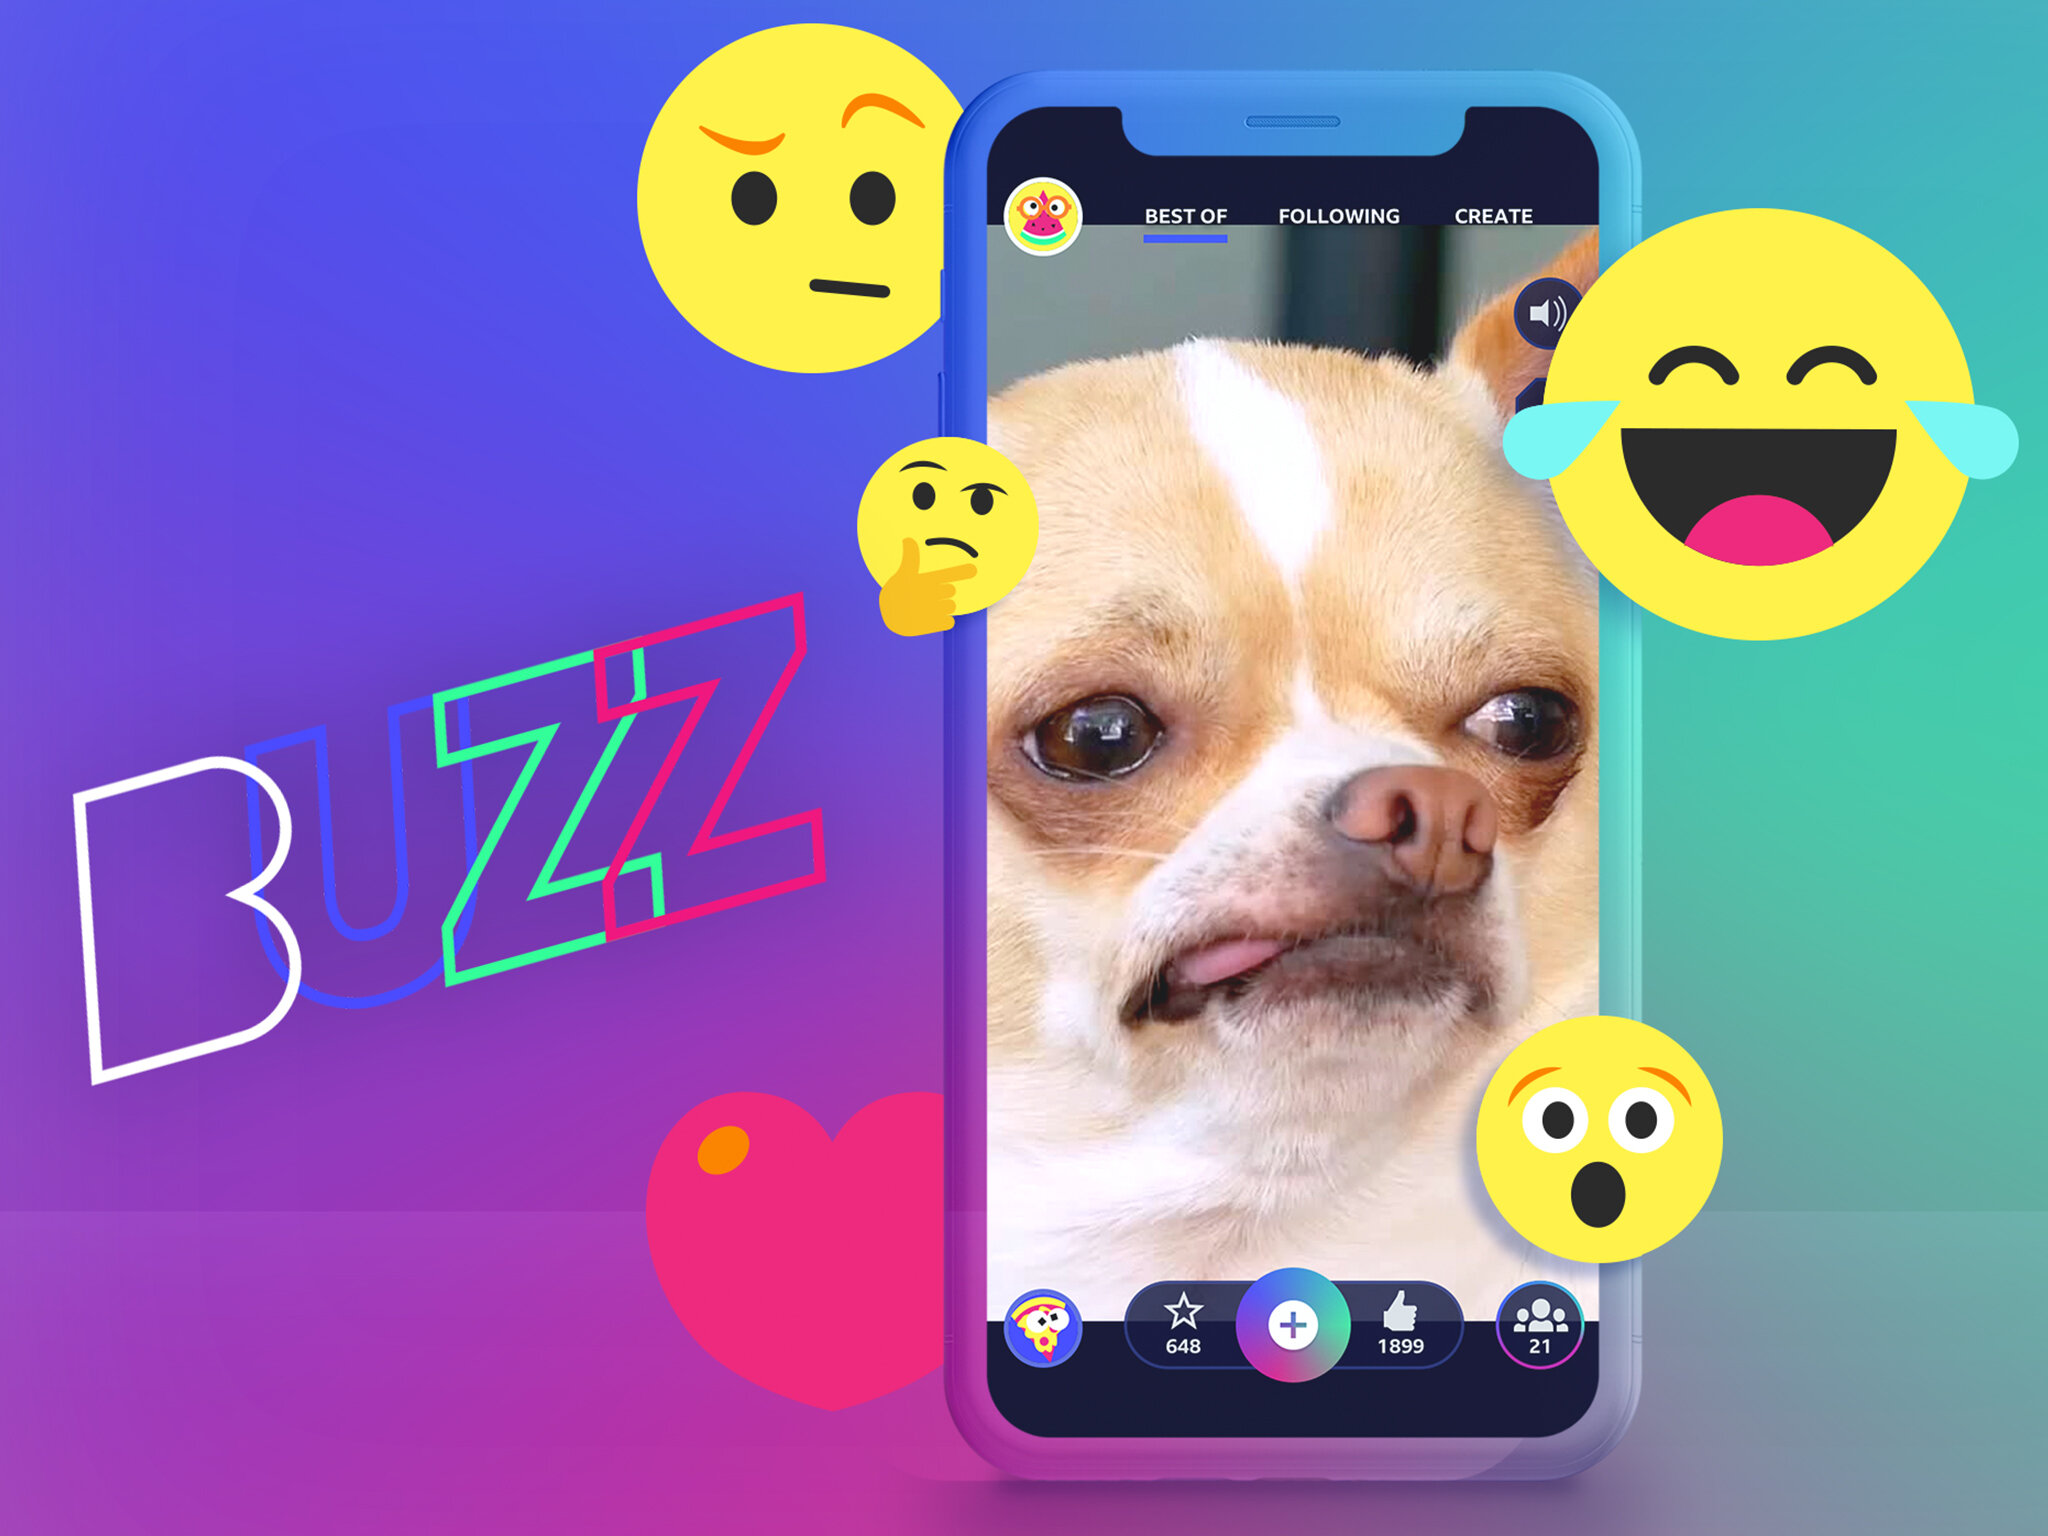 BBC Buzz - Buzz is a safe and fun creative social app for children. Created for the BBC from Chunk's social platform, Spot, children can create videos, drawings, memes, lipsyncs and overdubs and share them with friends and followers—all moderated by parents and the BBC.